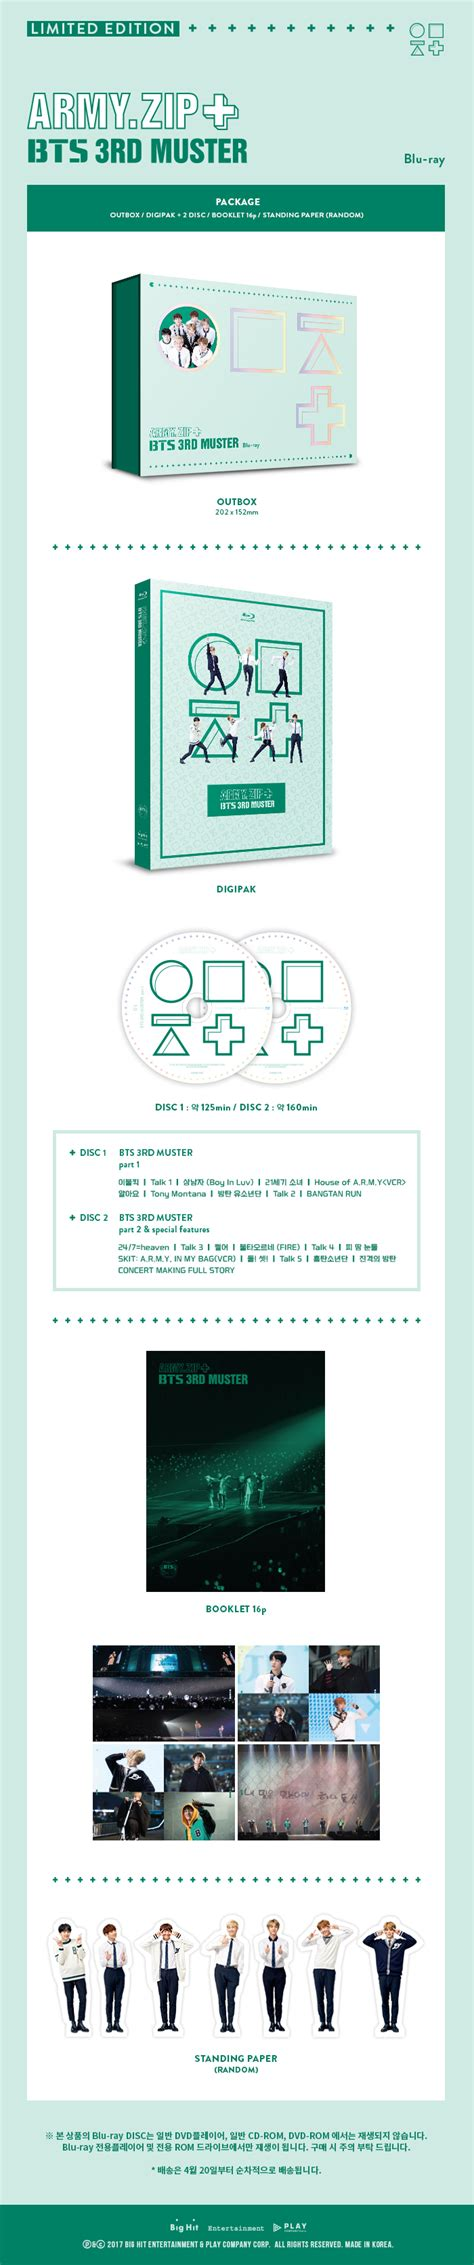 Bts 3rd Muster Army Zip Blue info bts 3rd muster army zip dvd